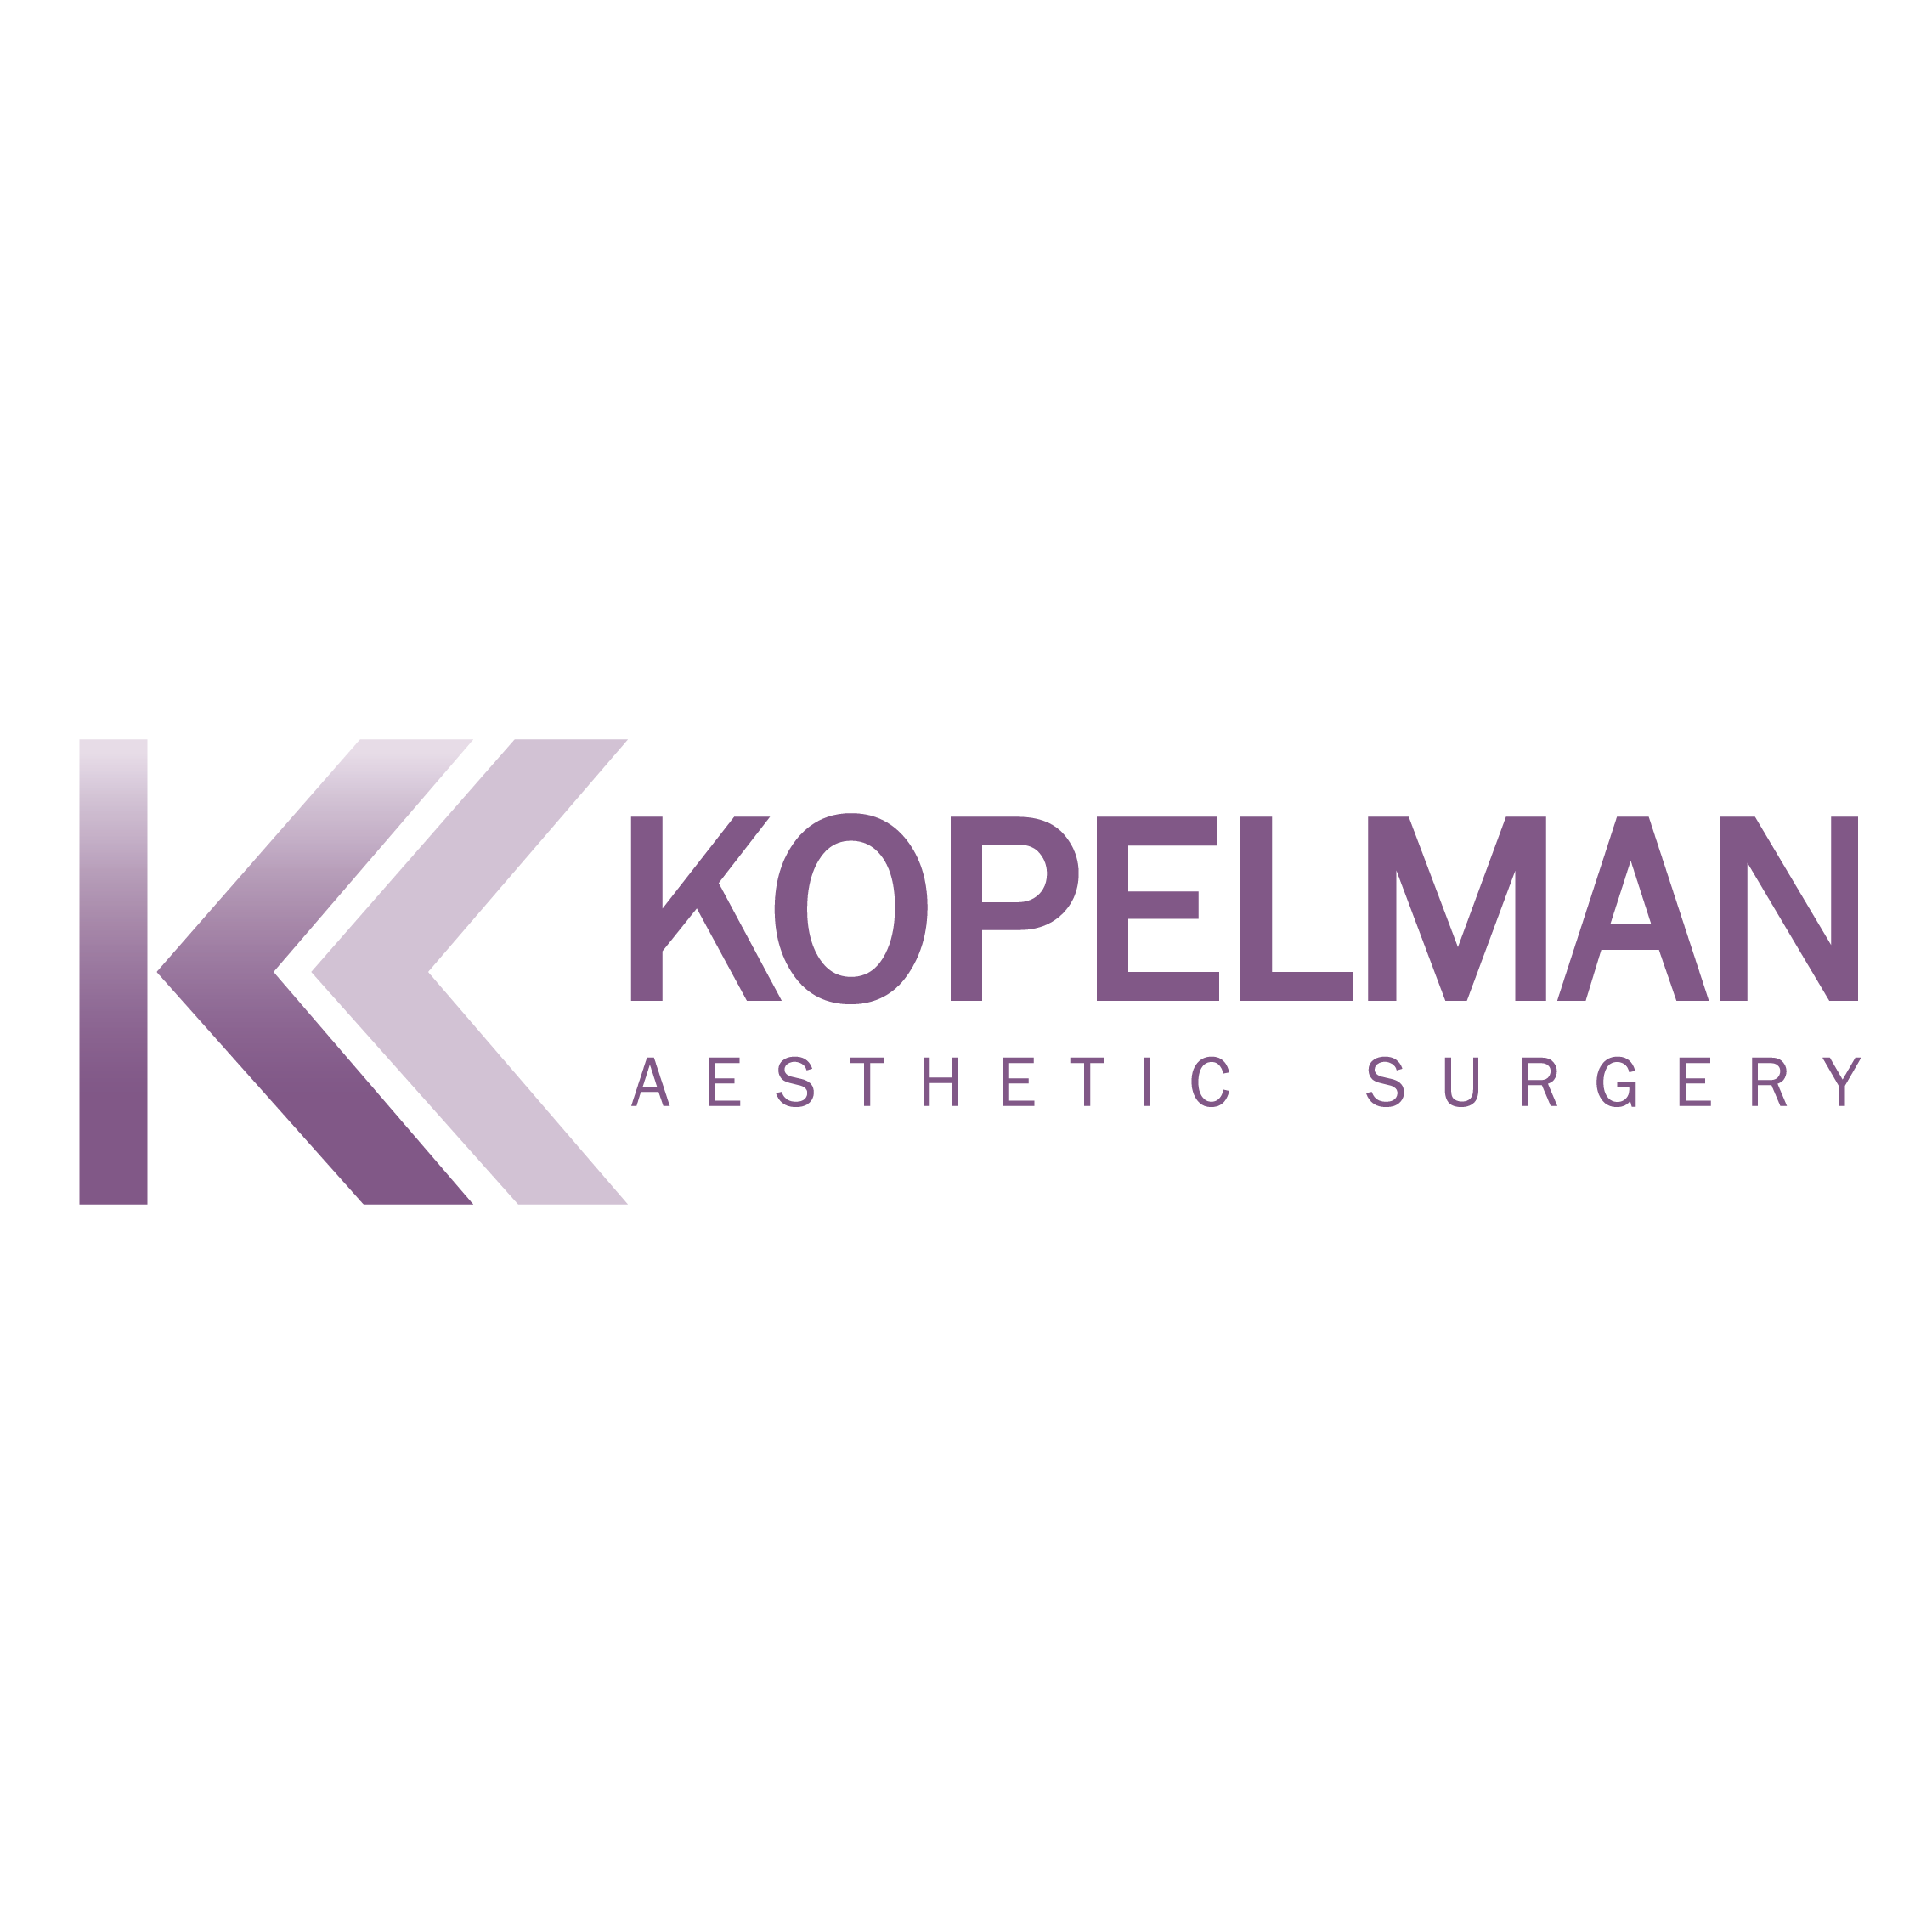 Kopelman Aesthetic Surgery